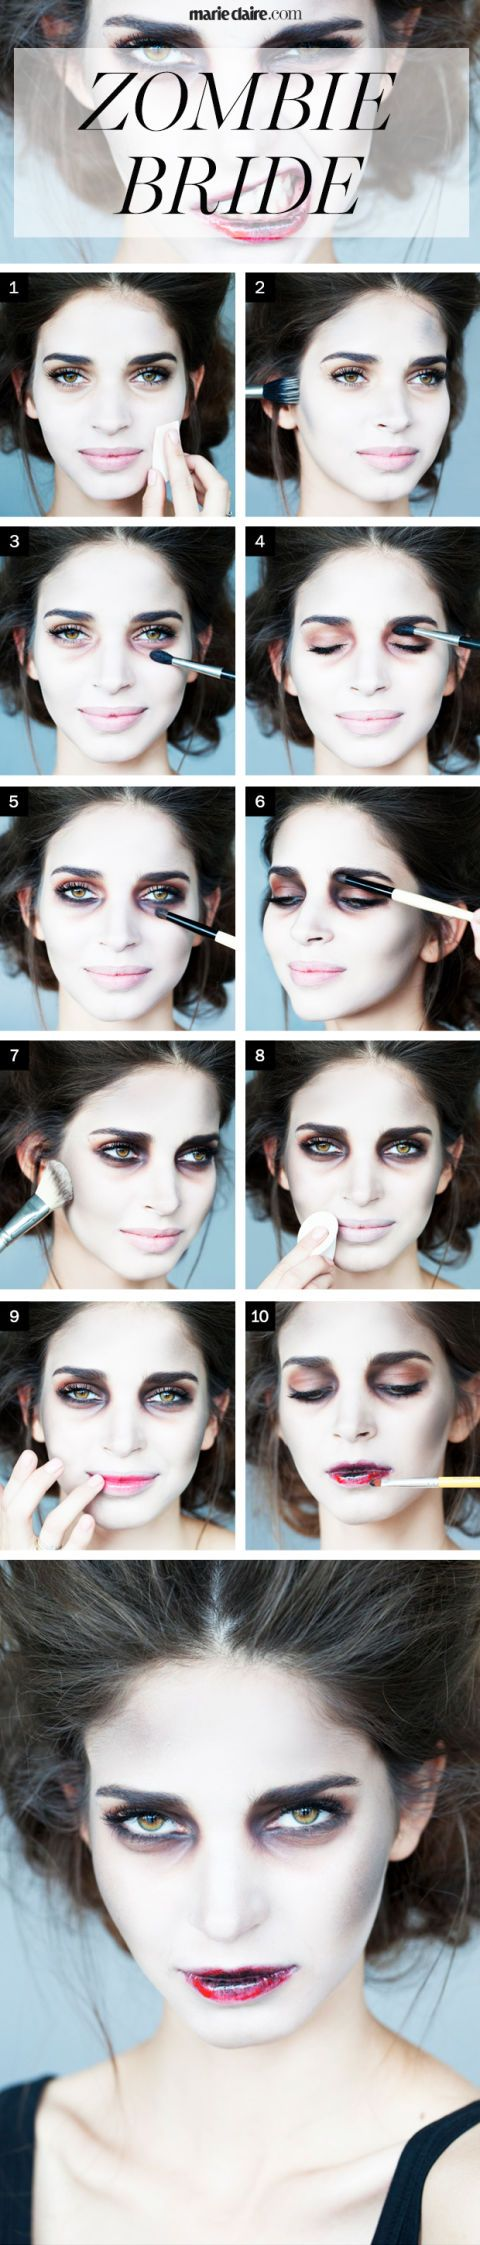 Halloween idea go as a zombie bride zombie bride makeup stunningly scary look risen from the dead with this zombie bride makeup tutorial baditri Gallery